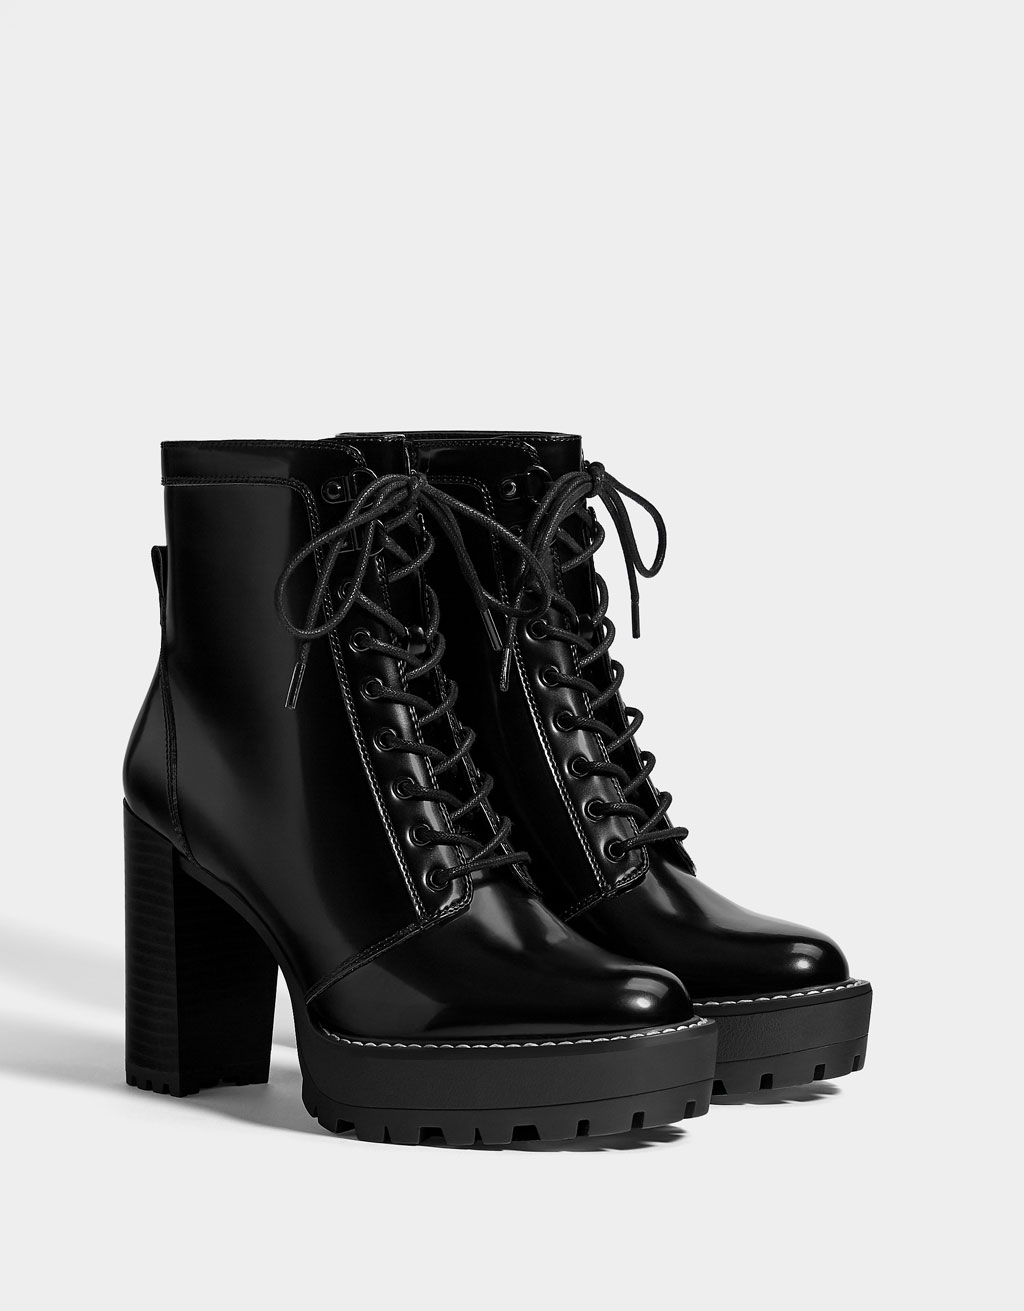 fd6ac84ebc89 Boots   Ankle boots - Shoes - COLLECTION - WOMEN - Bershka United ...